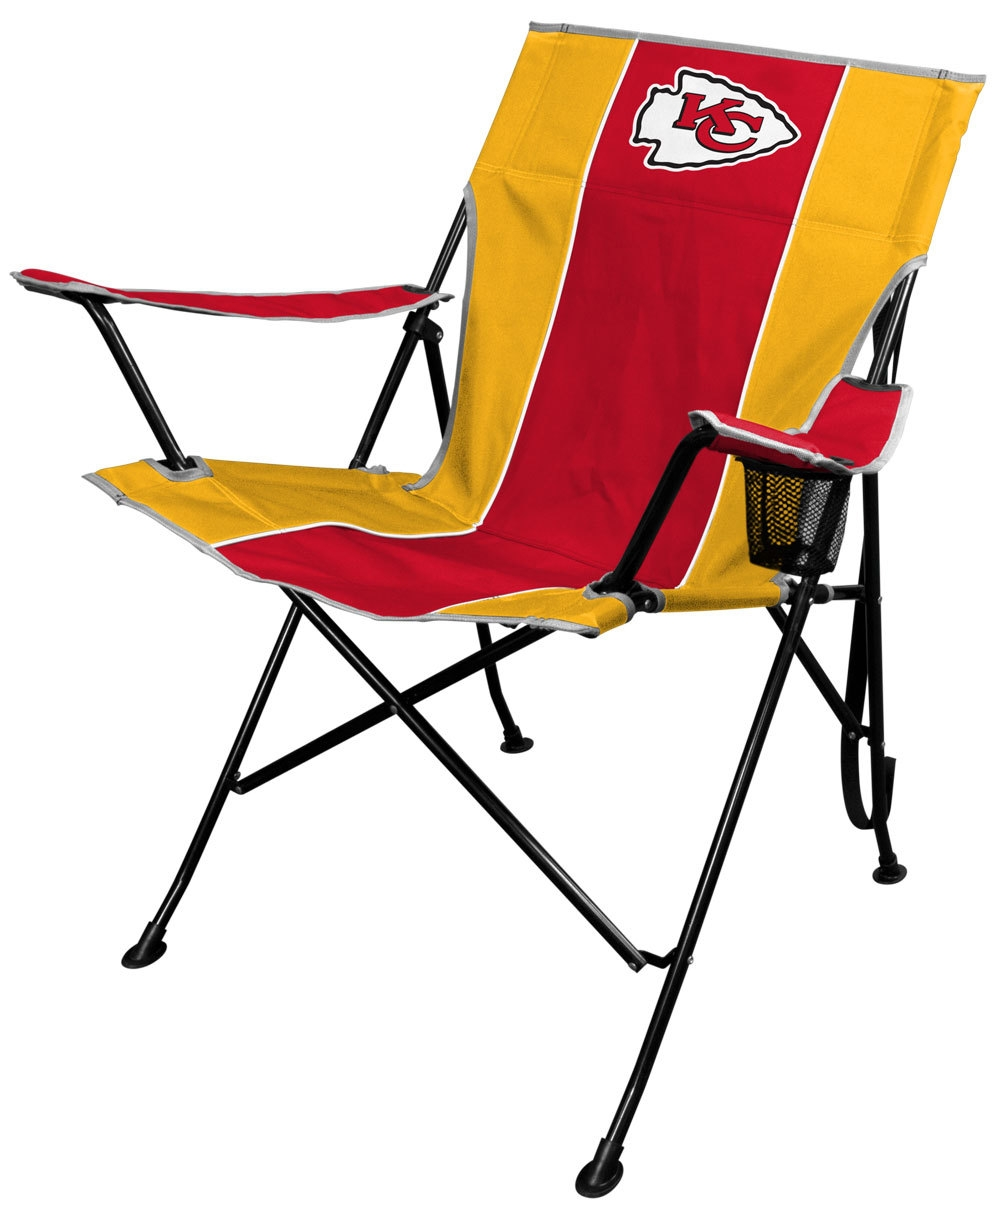 Nfl Football Kansas City Chiefs Bath - 1509989313 - Kansas City Chiefs Chair Tailgate 1509989313